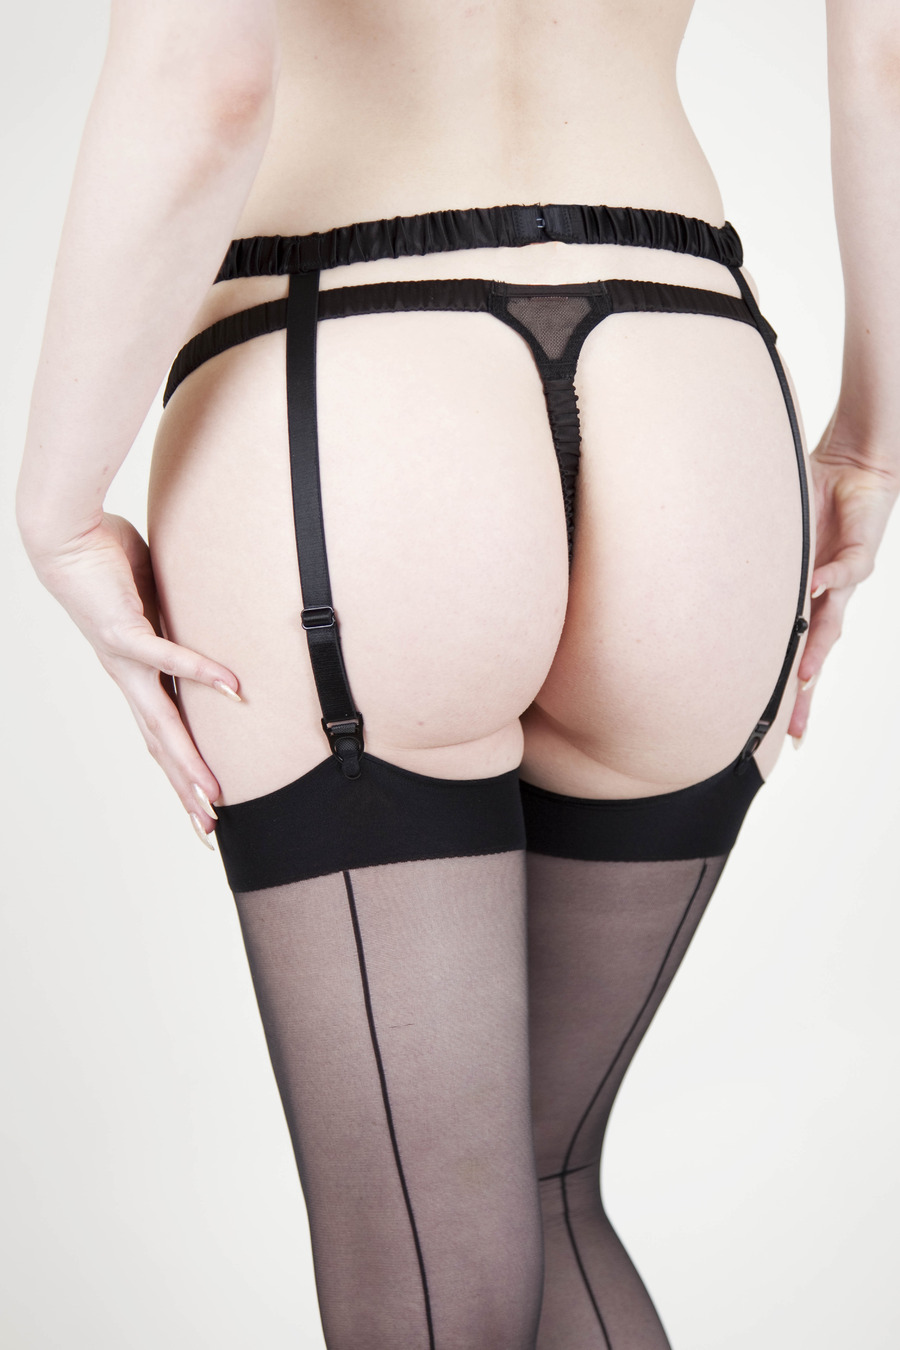 playful_promises_womens_classic_satin_suspender_belt_garters_3.jpg